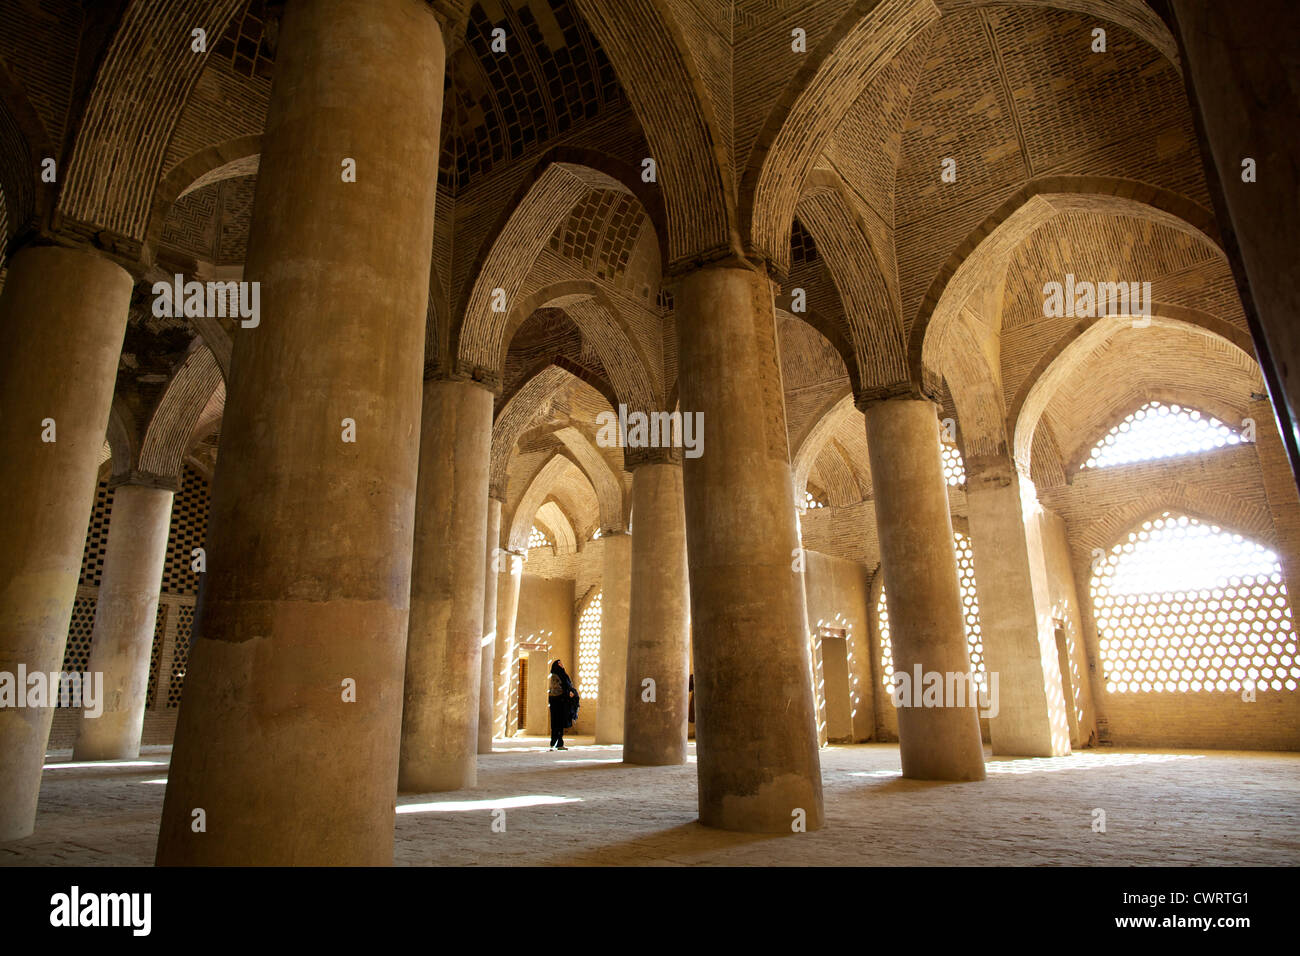 In the great columns room of the Gigantic mosque of Isfahan - Stock Image